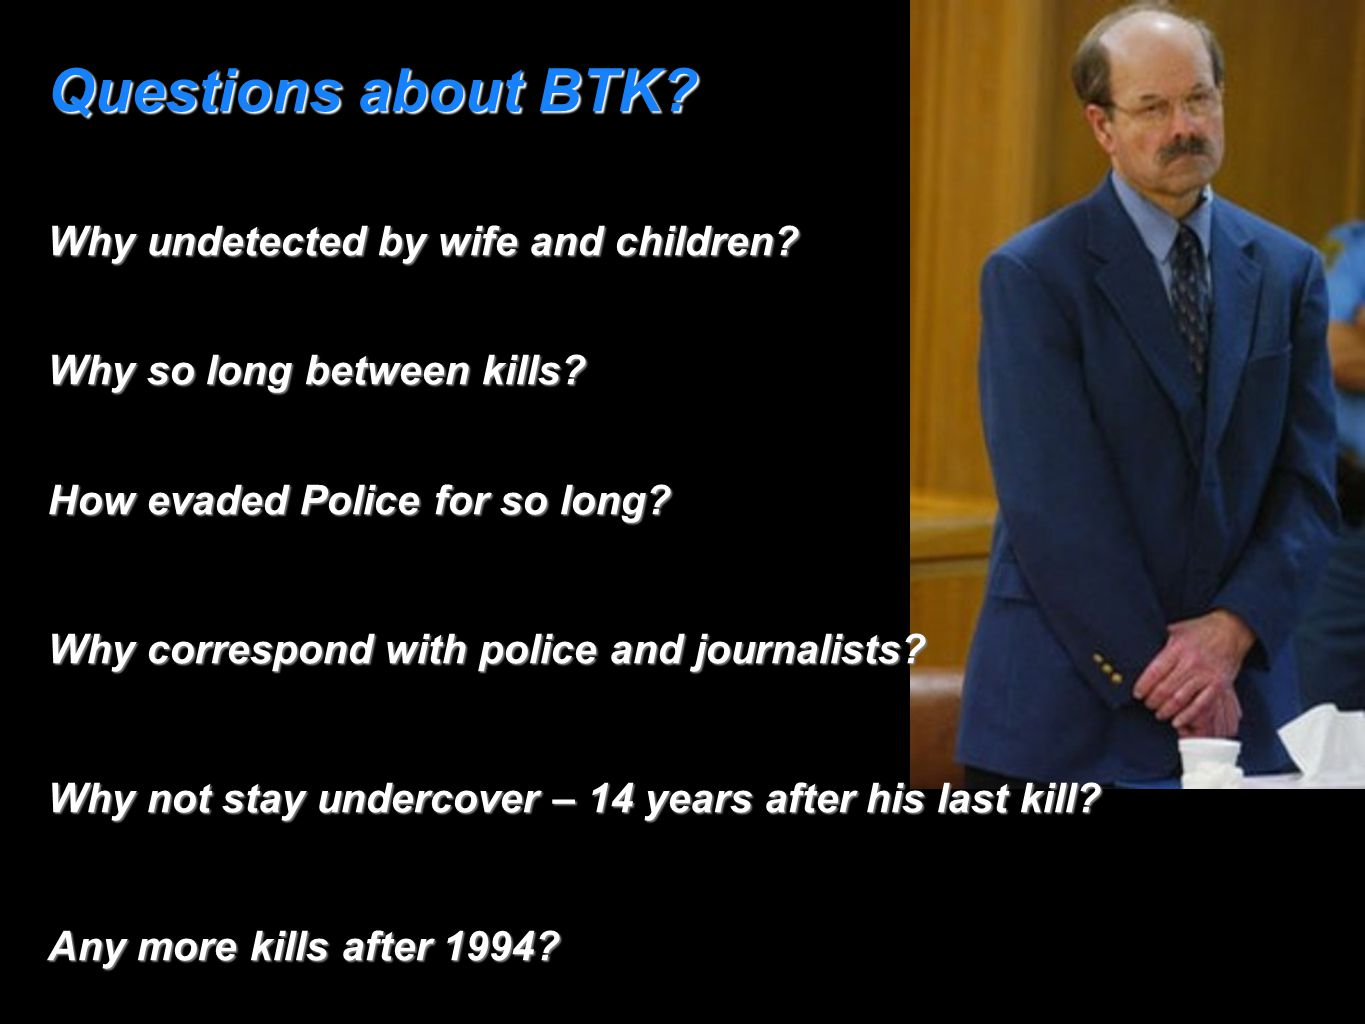 Questions about BTK? Why undetected by wife and children? Why so long between kills? How evaded Police for so long? Why correspond with police and jou